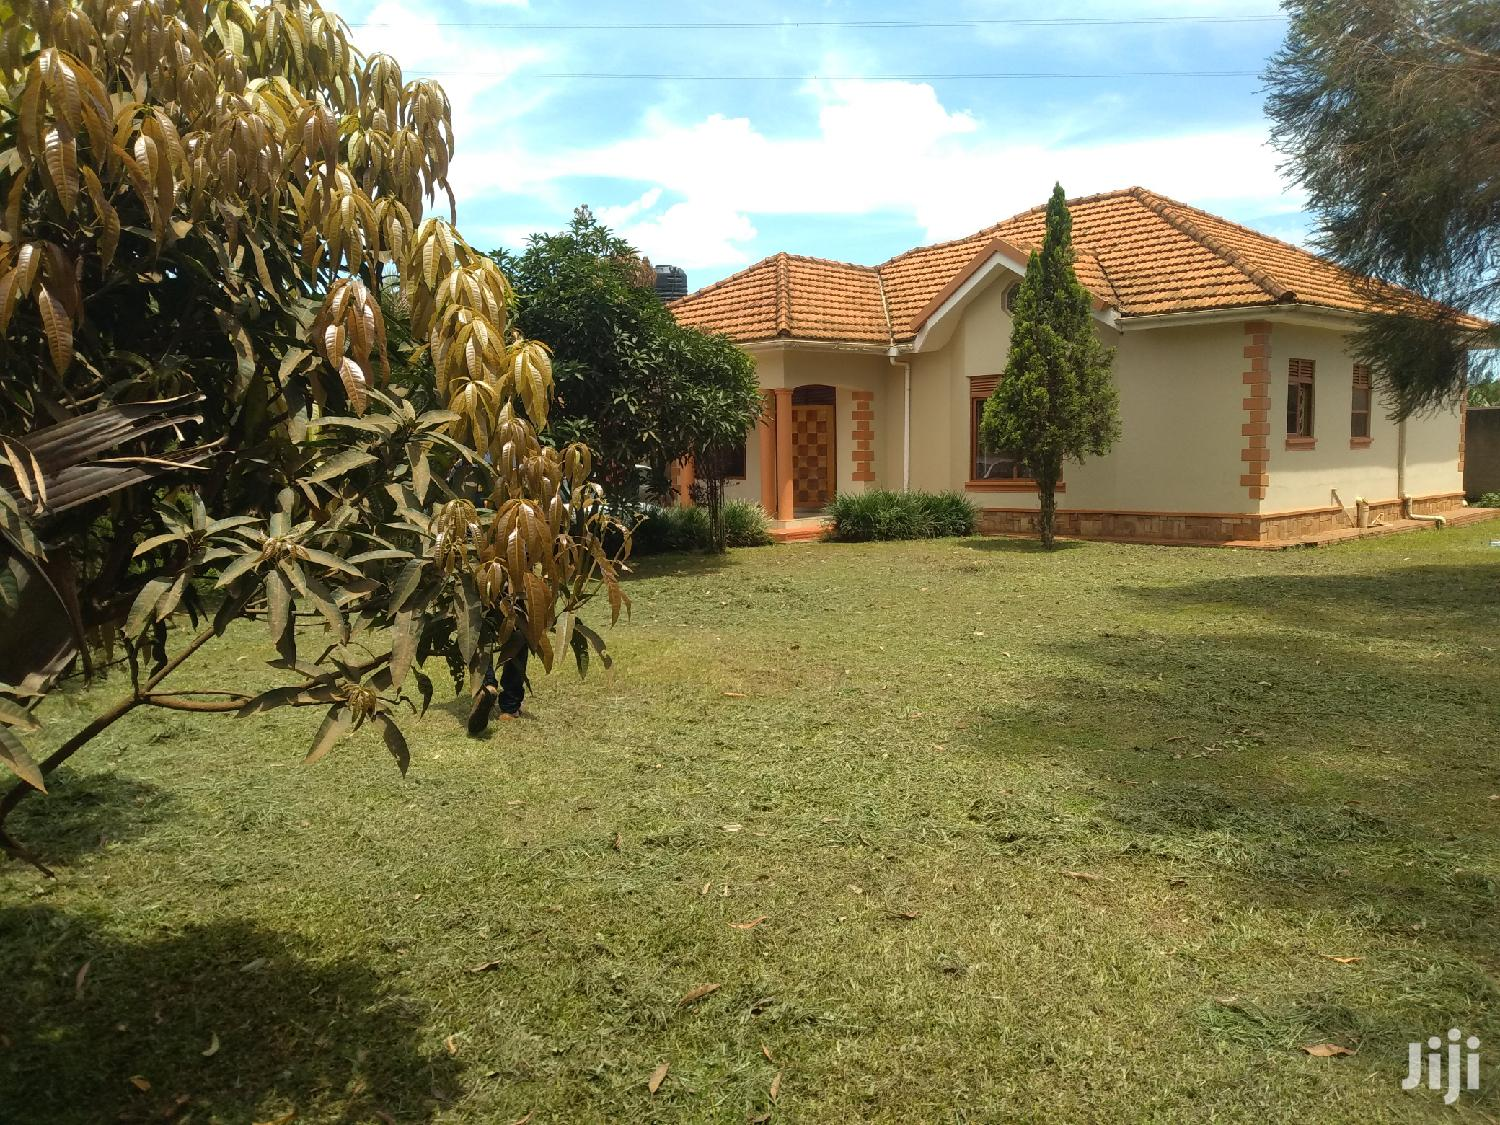 First Lane House for Sale in Kira With Ready Land Title   Houses & Apartments For Sale for sale in Kampala, Central Region, Uganda